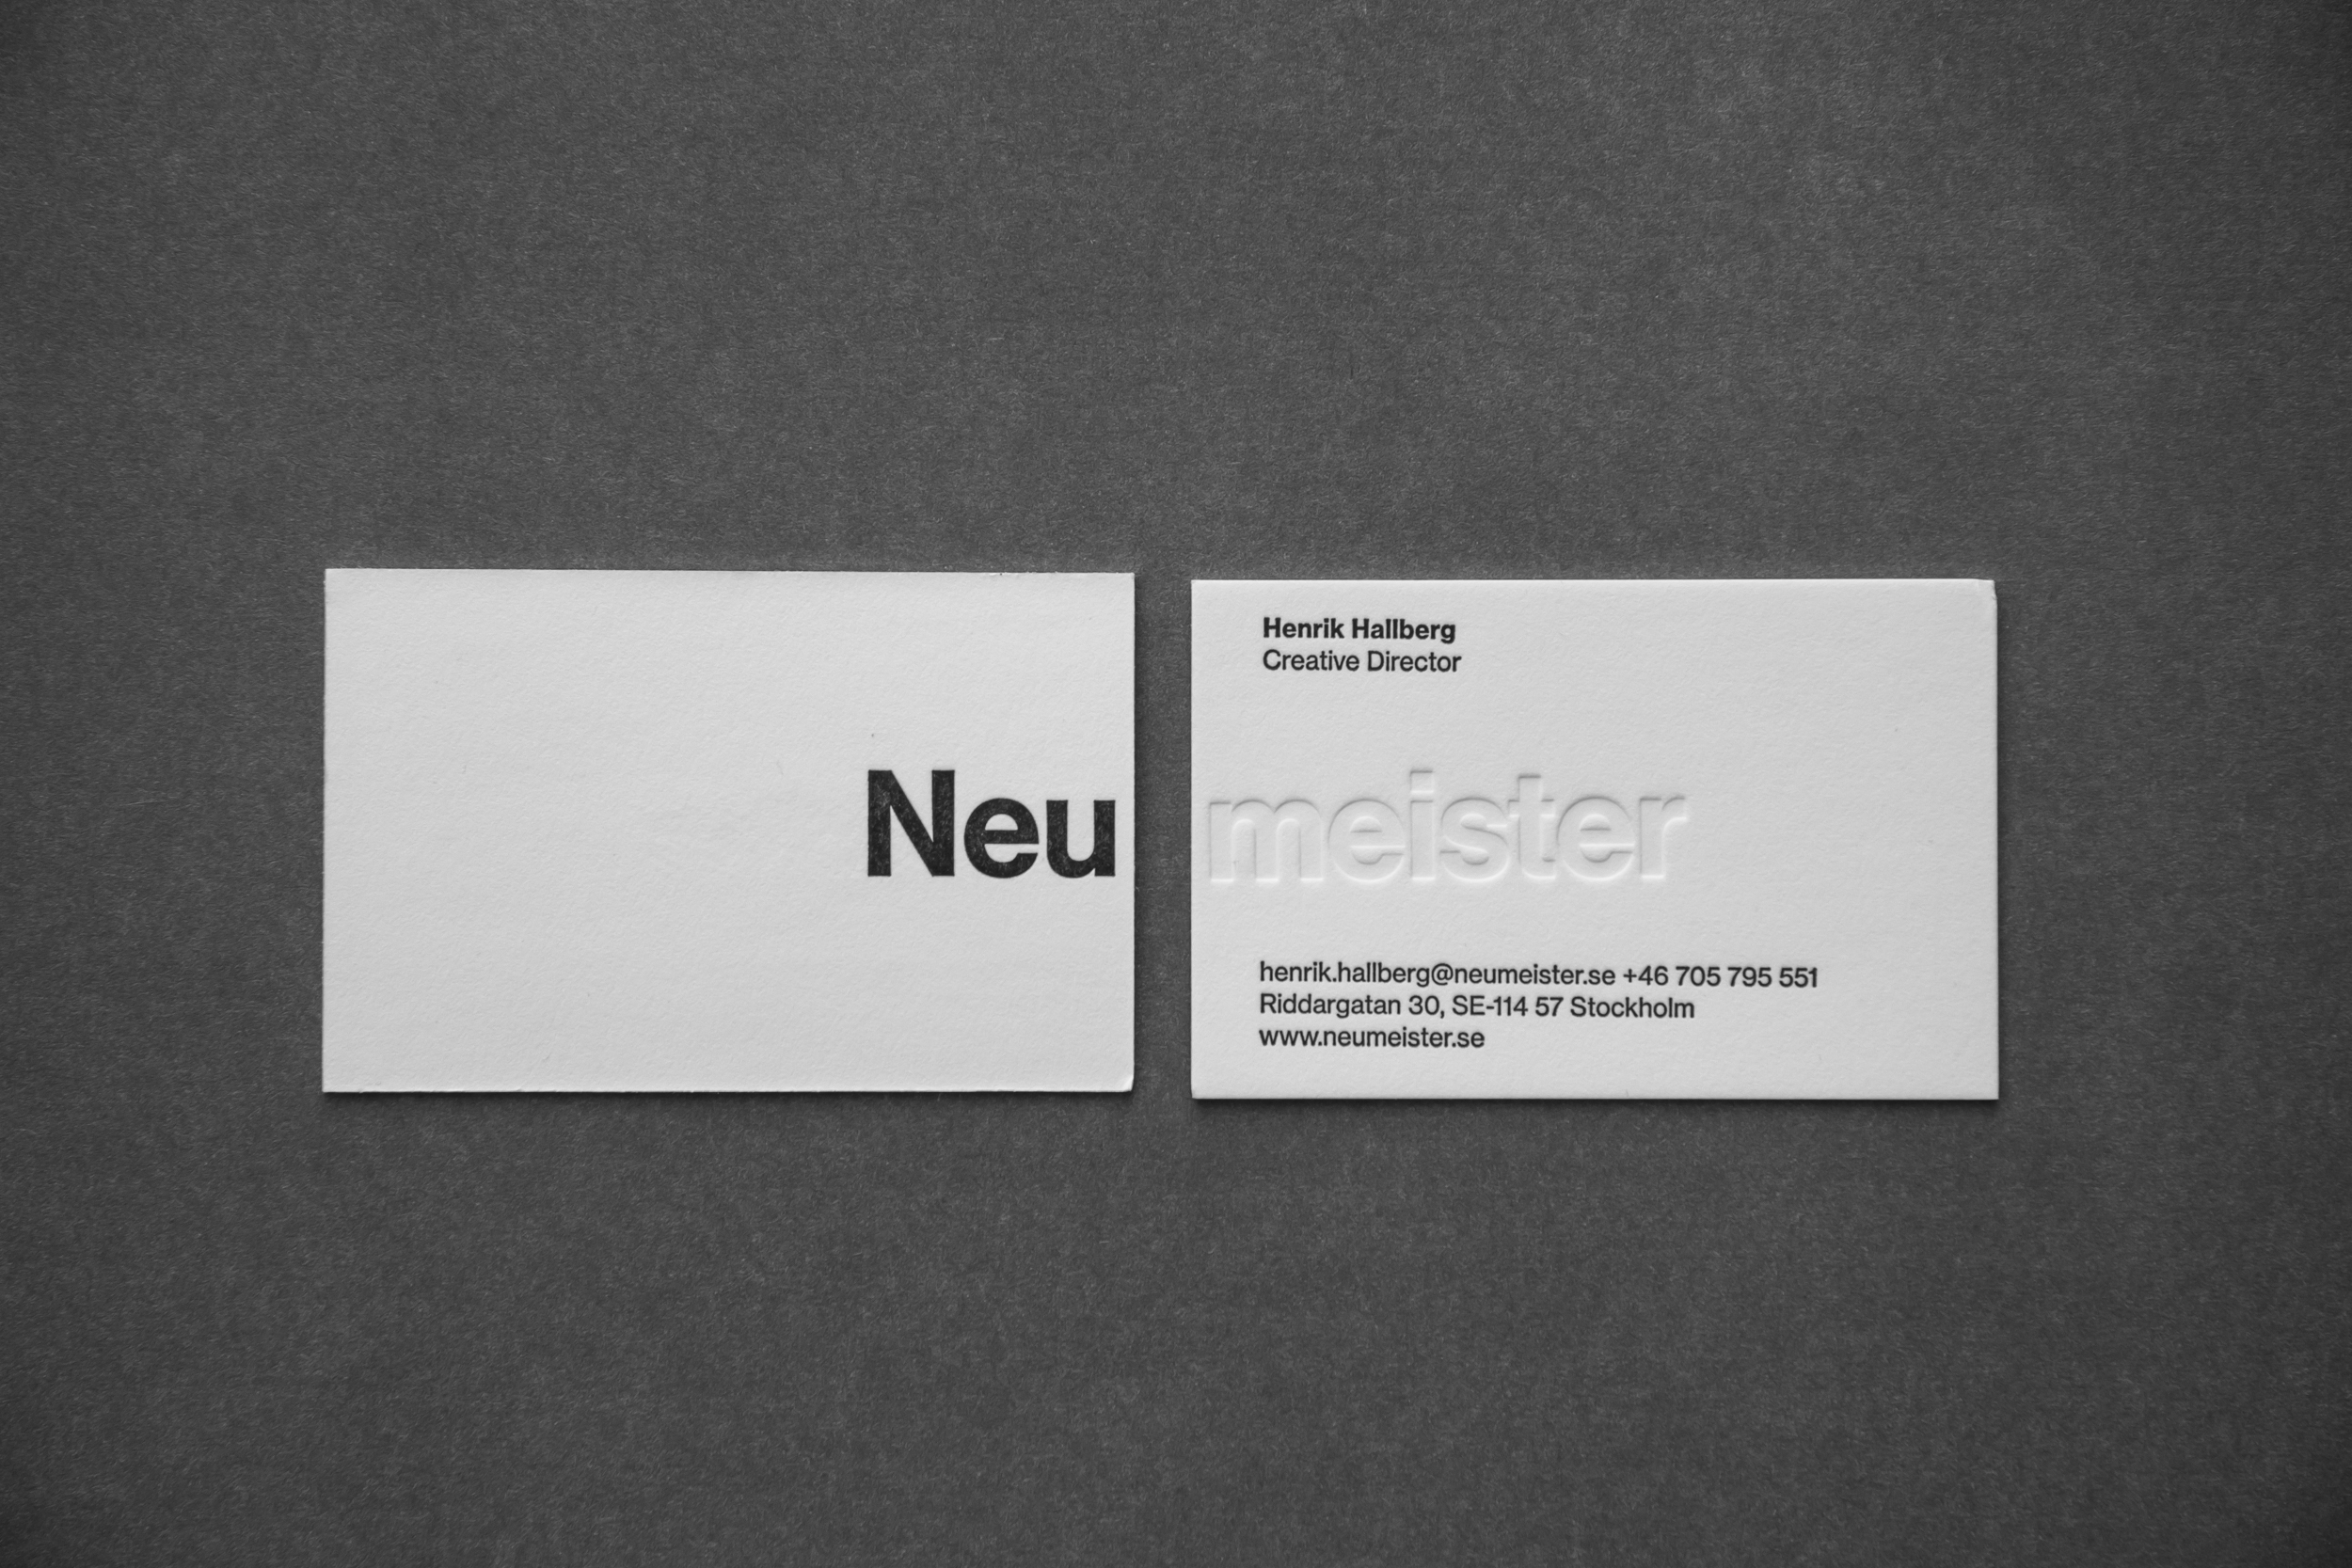 Business cards for Neumeister